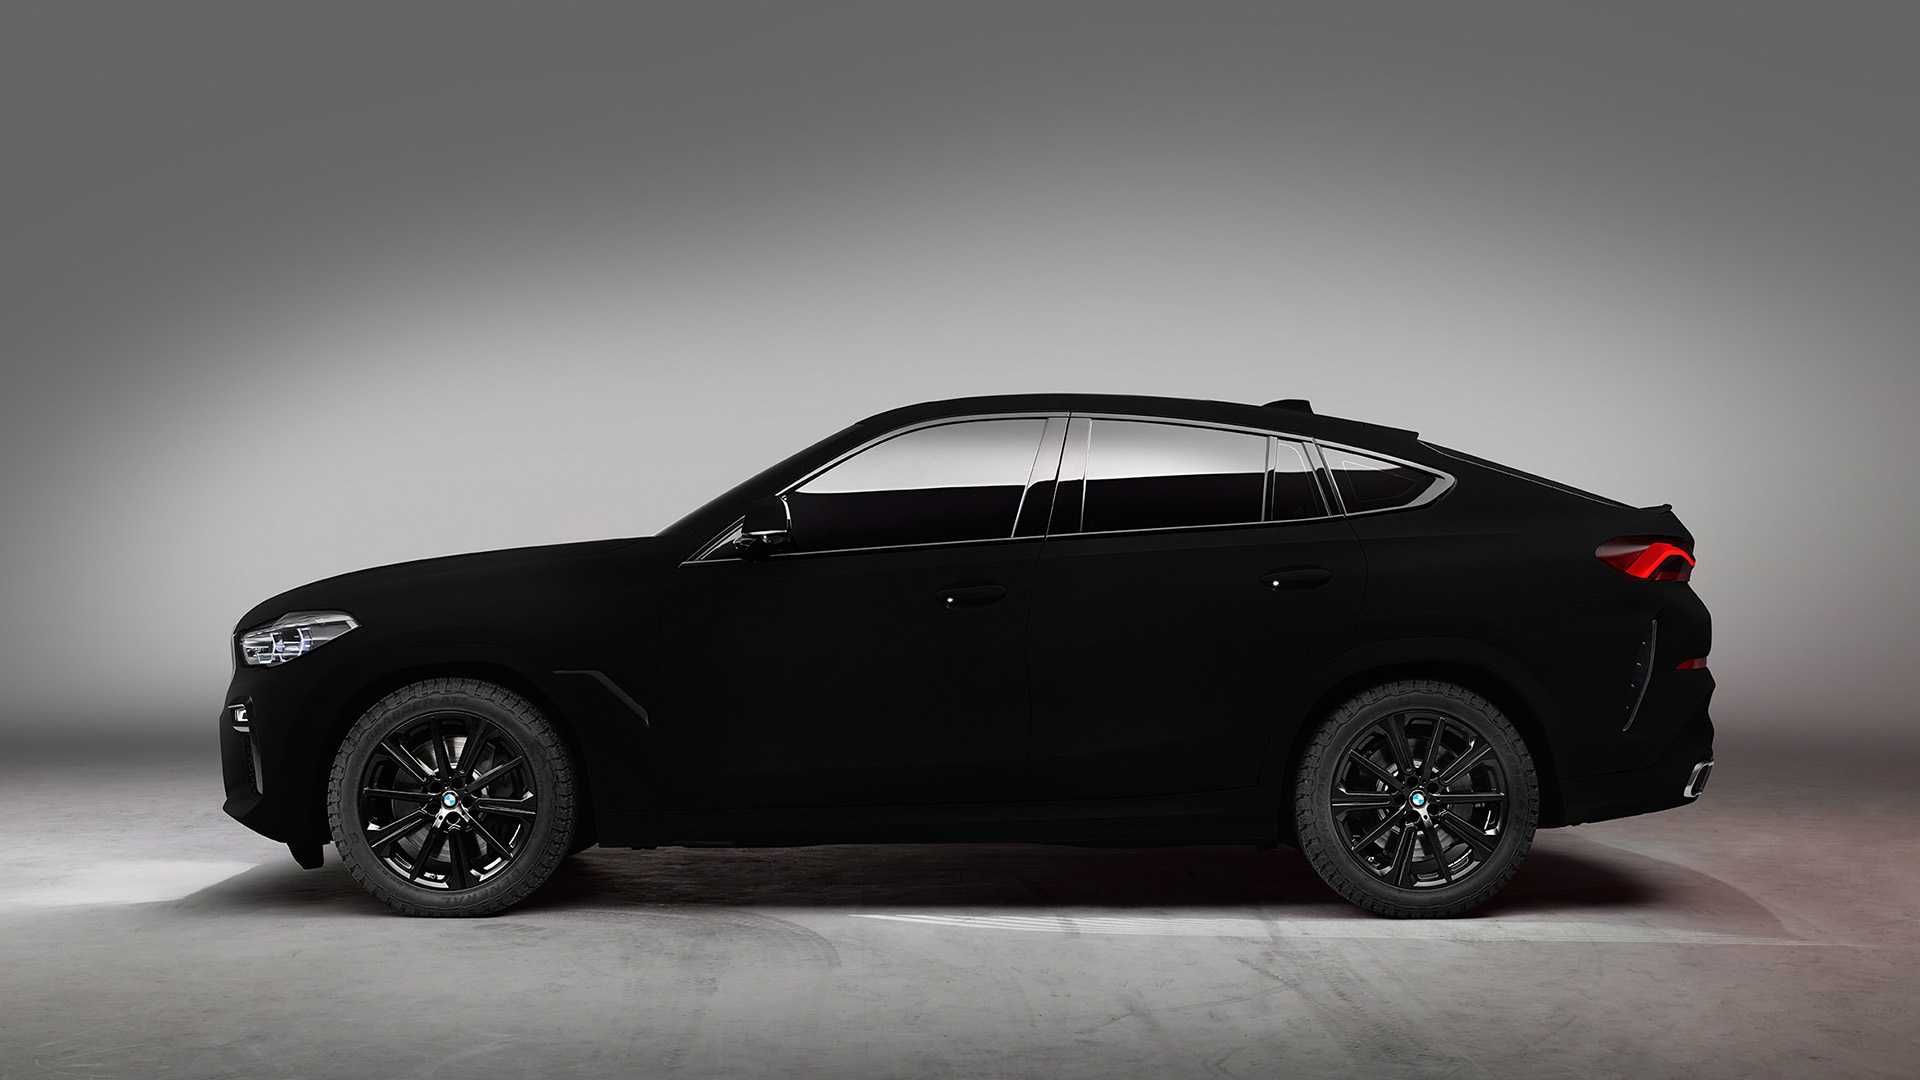 BMW X6 Vantablack In Motion Looks Like A Rolling Black Hole